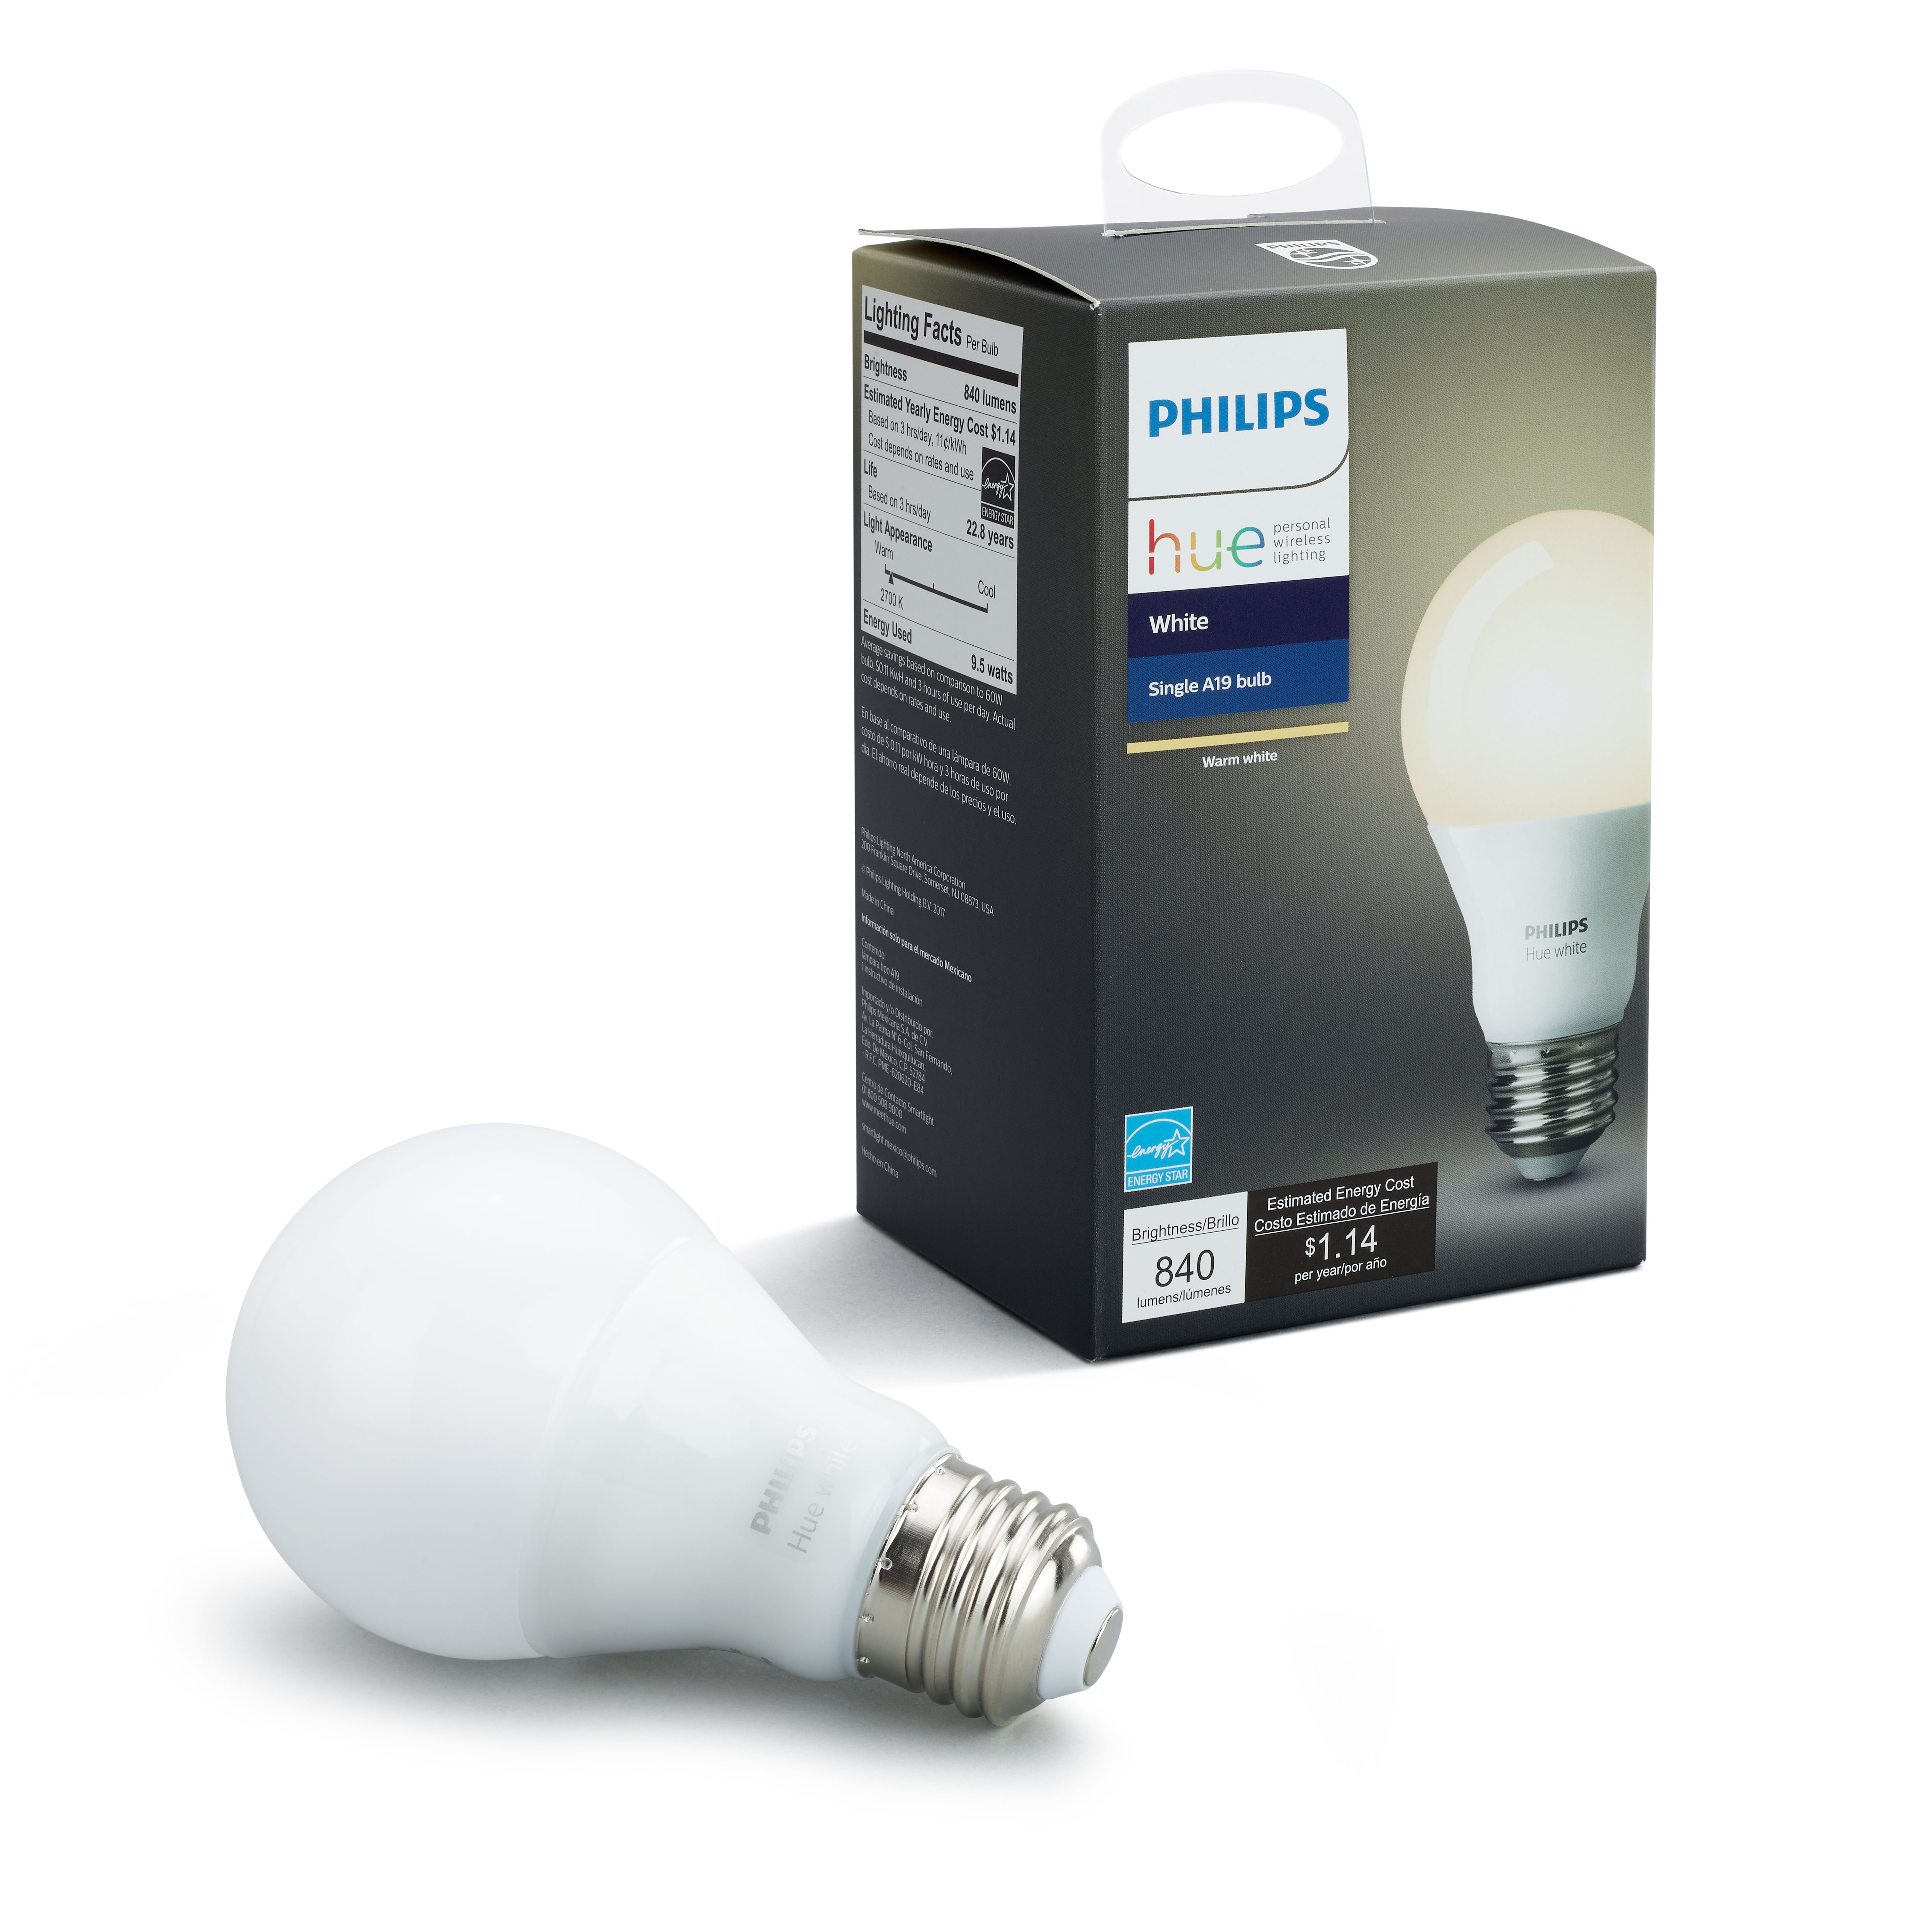 Philips Hue White Smart A19 Light Bulb, 60W Equivalent, Hub Required